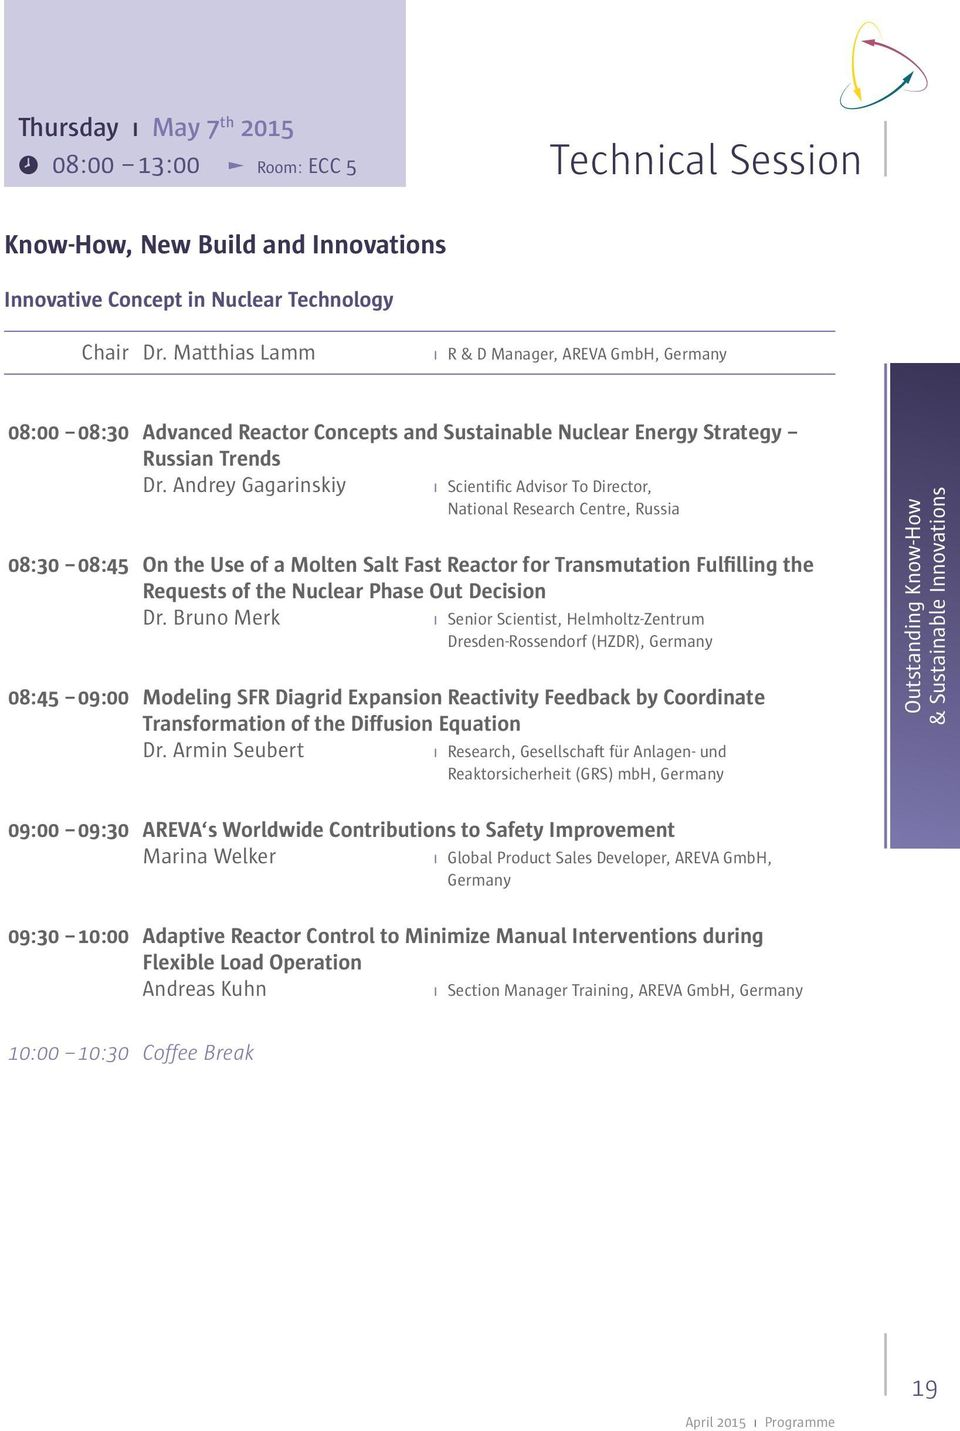 Andrey Gagarinskiy ı Scientific Advisor To Director, National Research Centre, Russia 08:30 08:45 On the Use of a Molten Salt Fast Reactor for Transmutation Fulfilling the Requests of the Nuclear